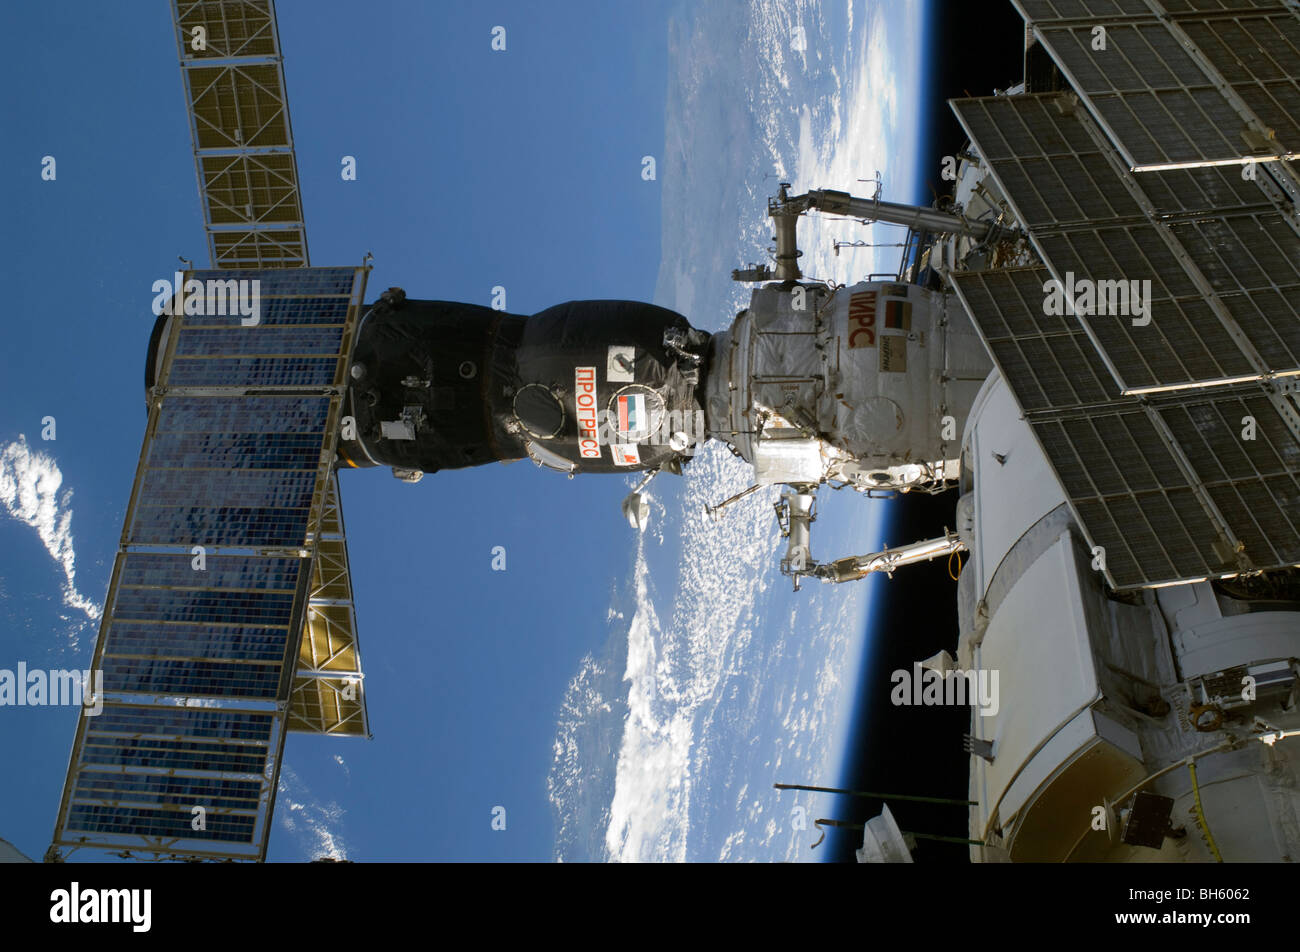 November 21, 2009 - Russia's Progress 35P is docked to the Pirs Docking Compartment. - Stock Image